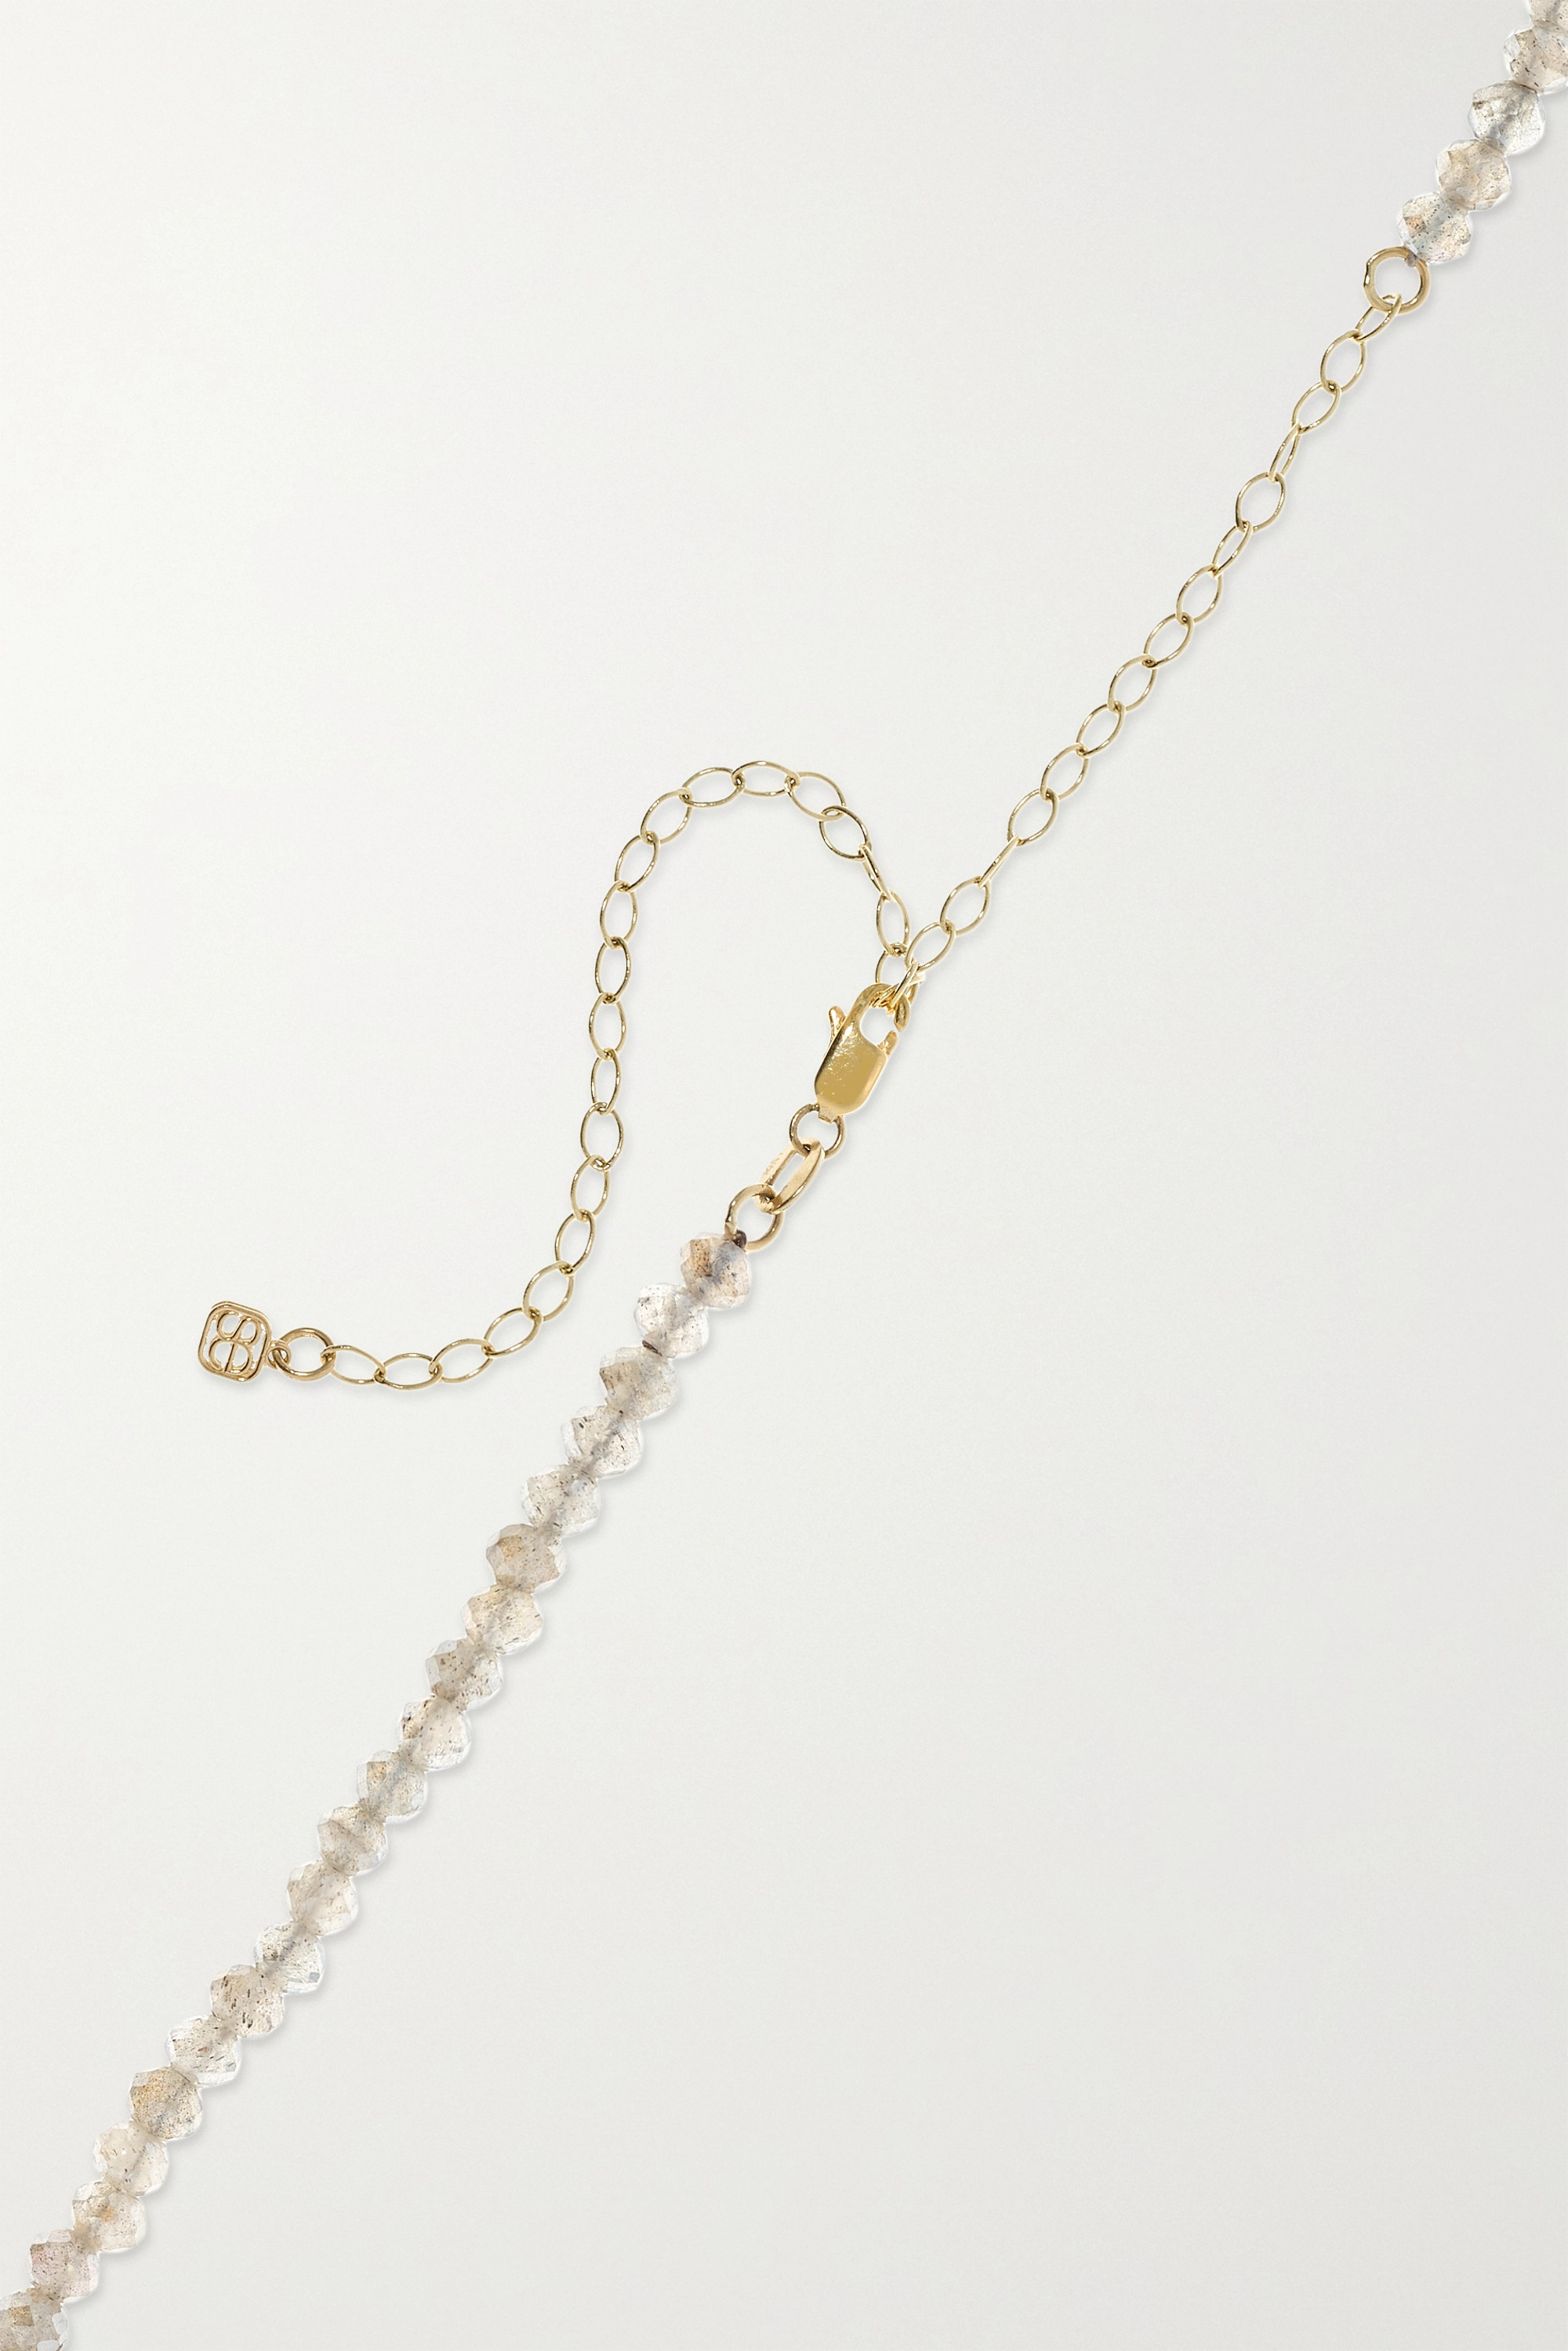 Sydney Evan Star And Moon 14-karat yellow and white gold labradorite and diamond necklace